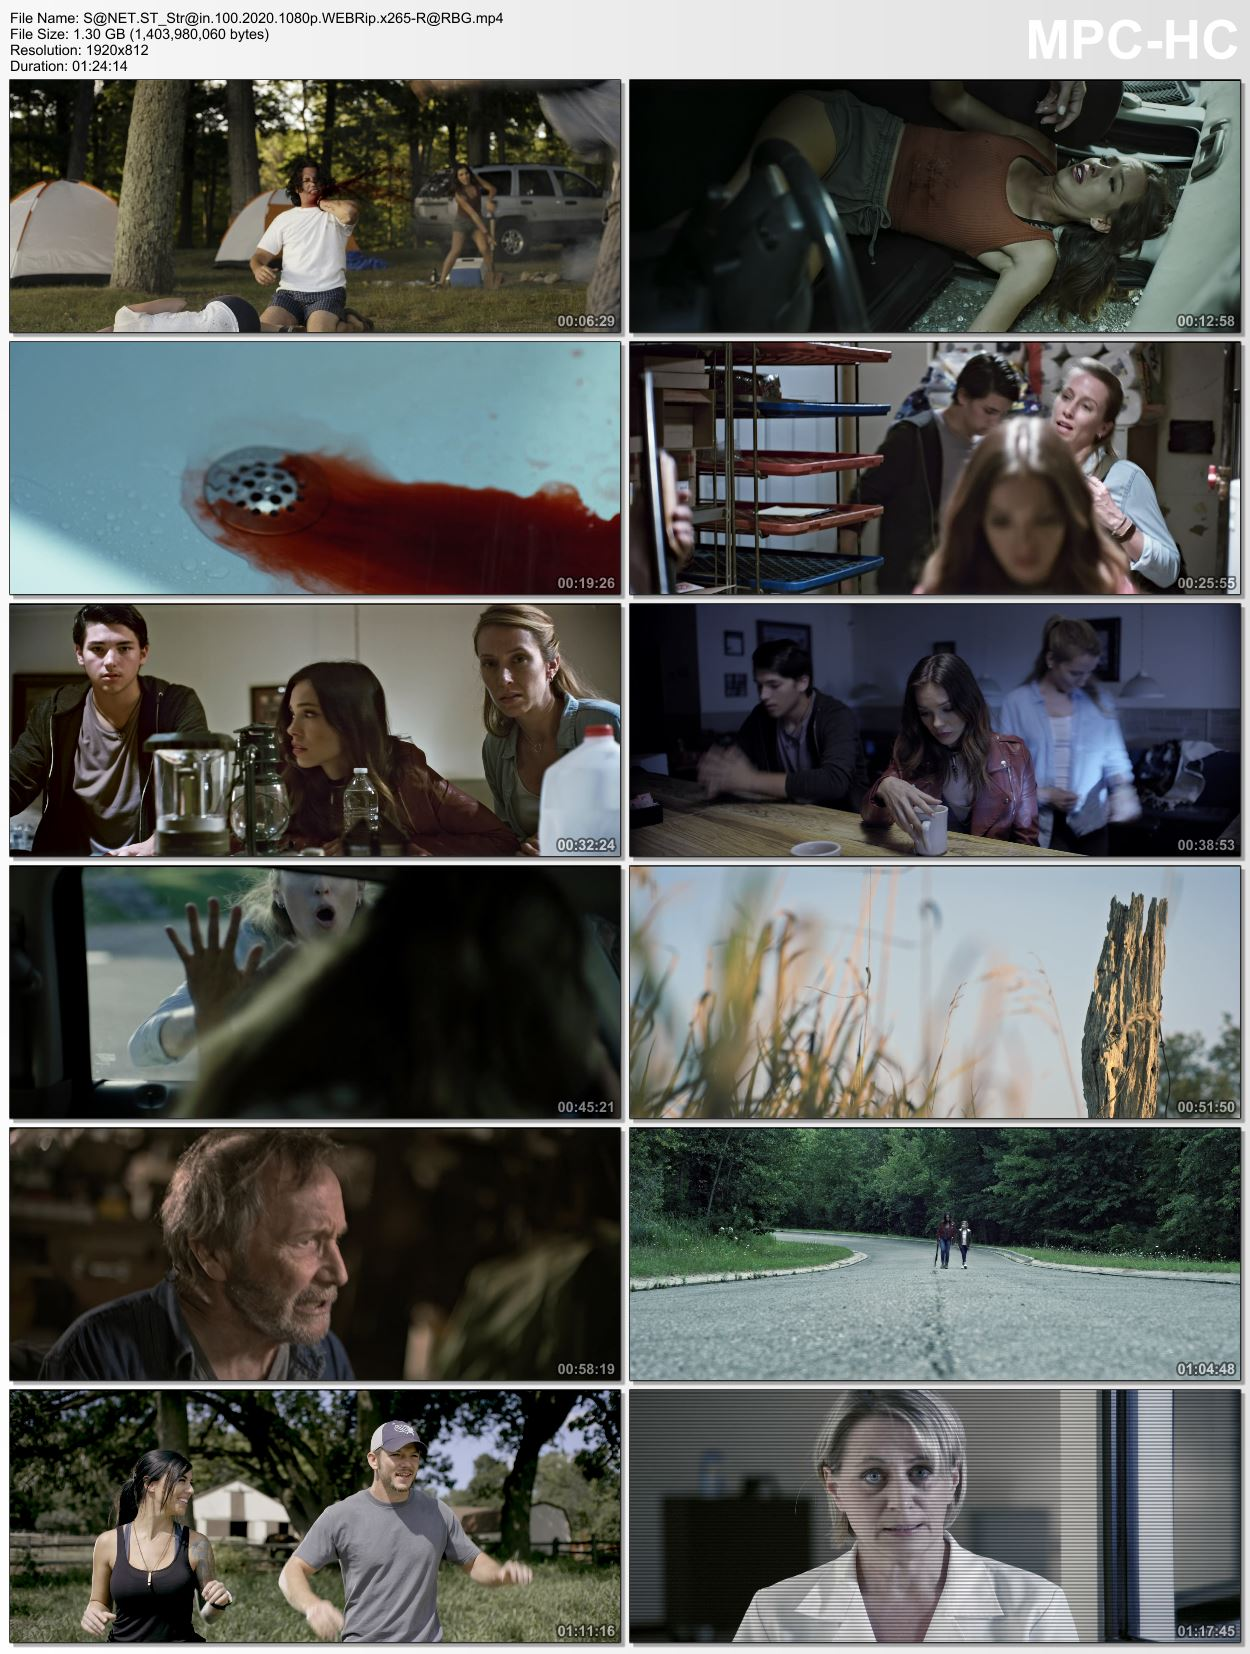 Download Strain 100 2020 1080p Webrip X265 Rarbg Softarchive Be the first to review this item1h 24min2020r. sanet st